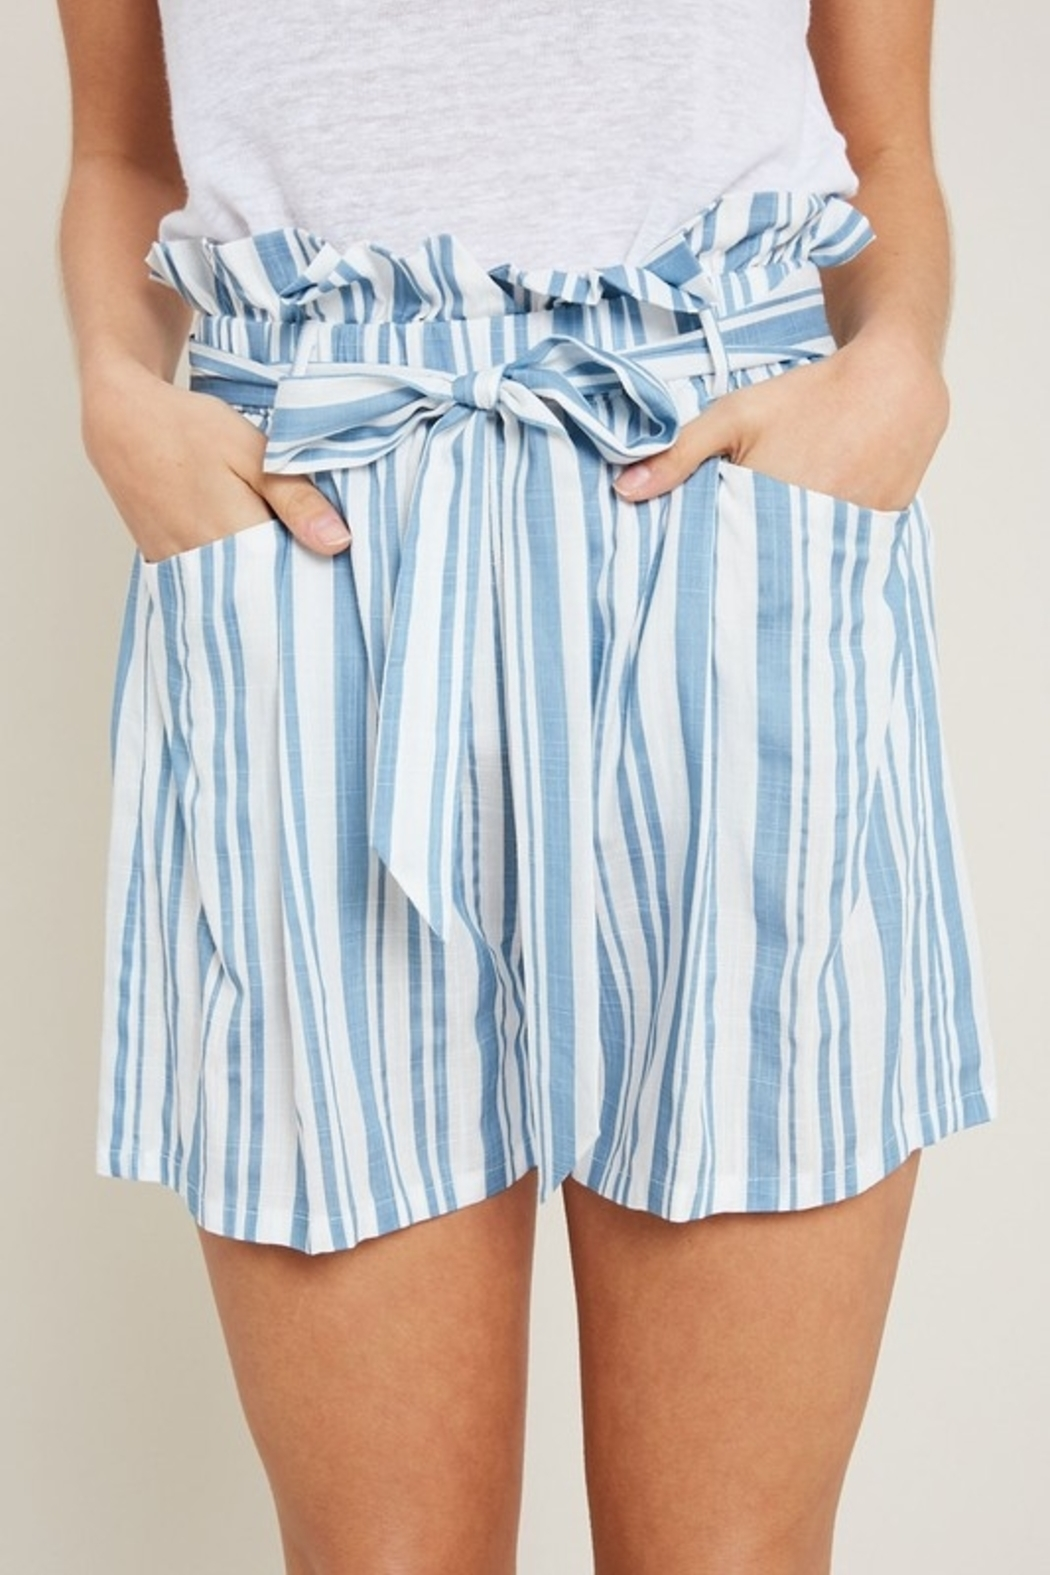 ee:some Springtime Stripes shorts - Front Cropped Image